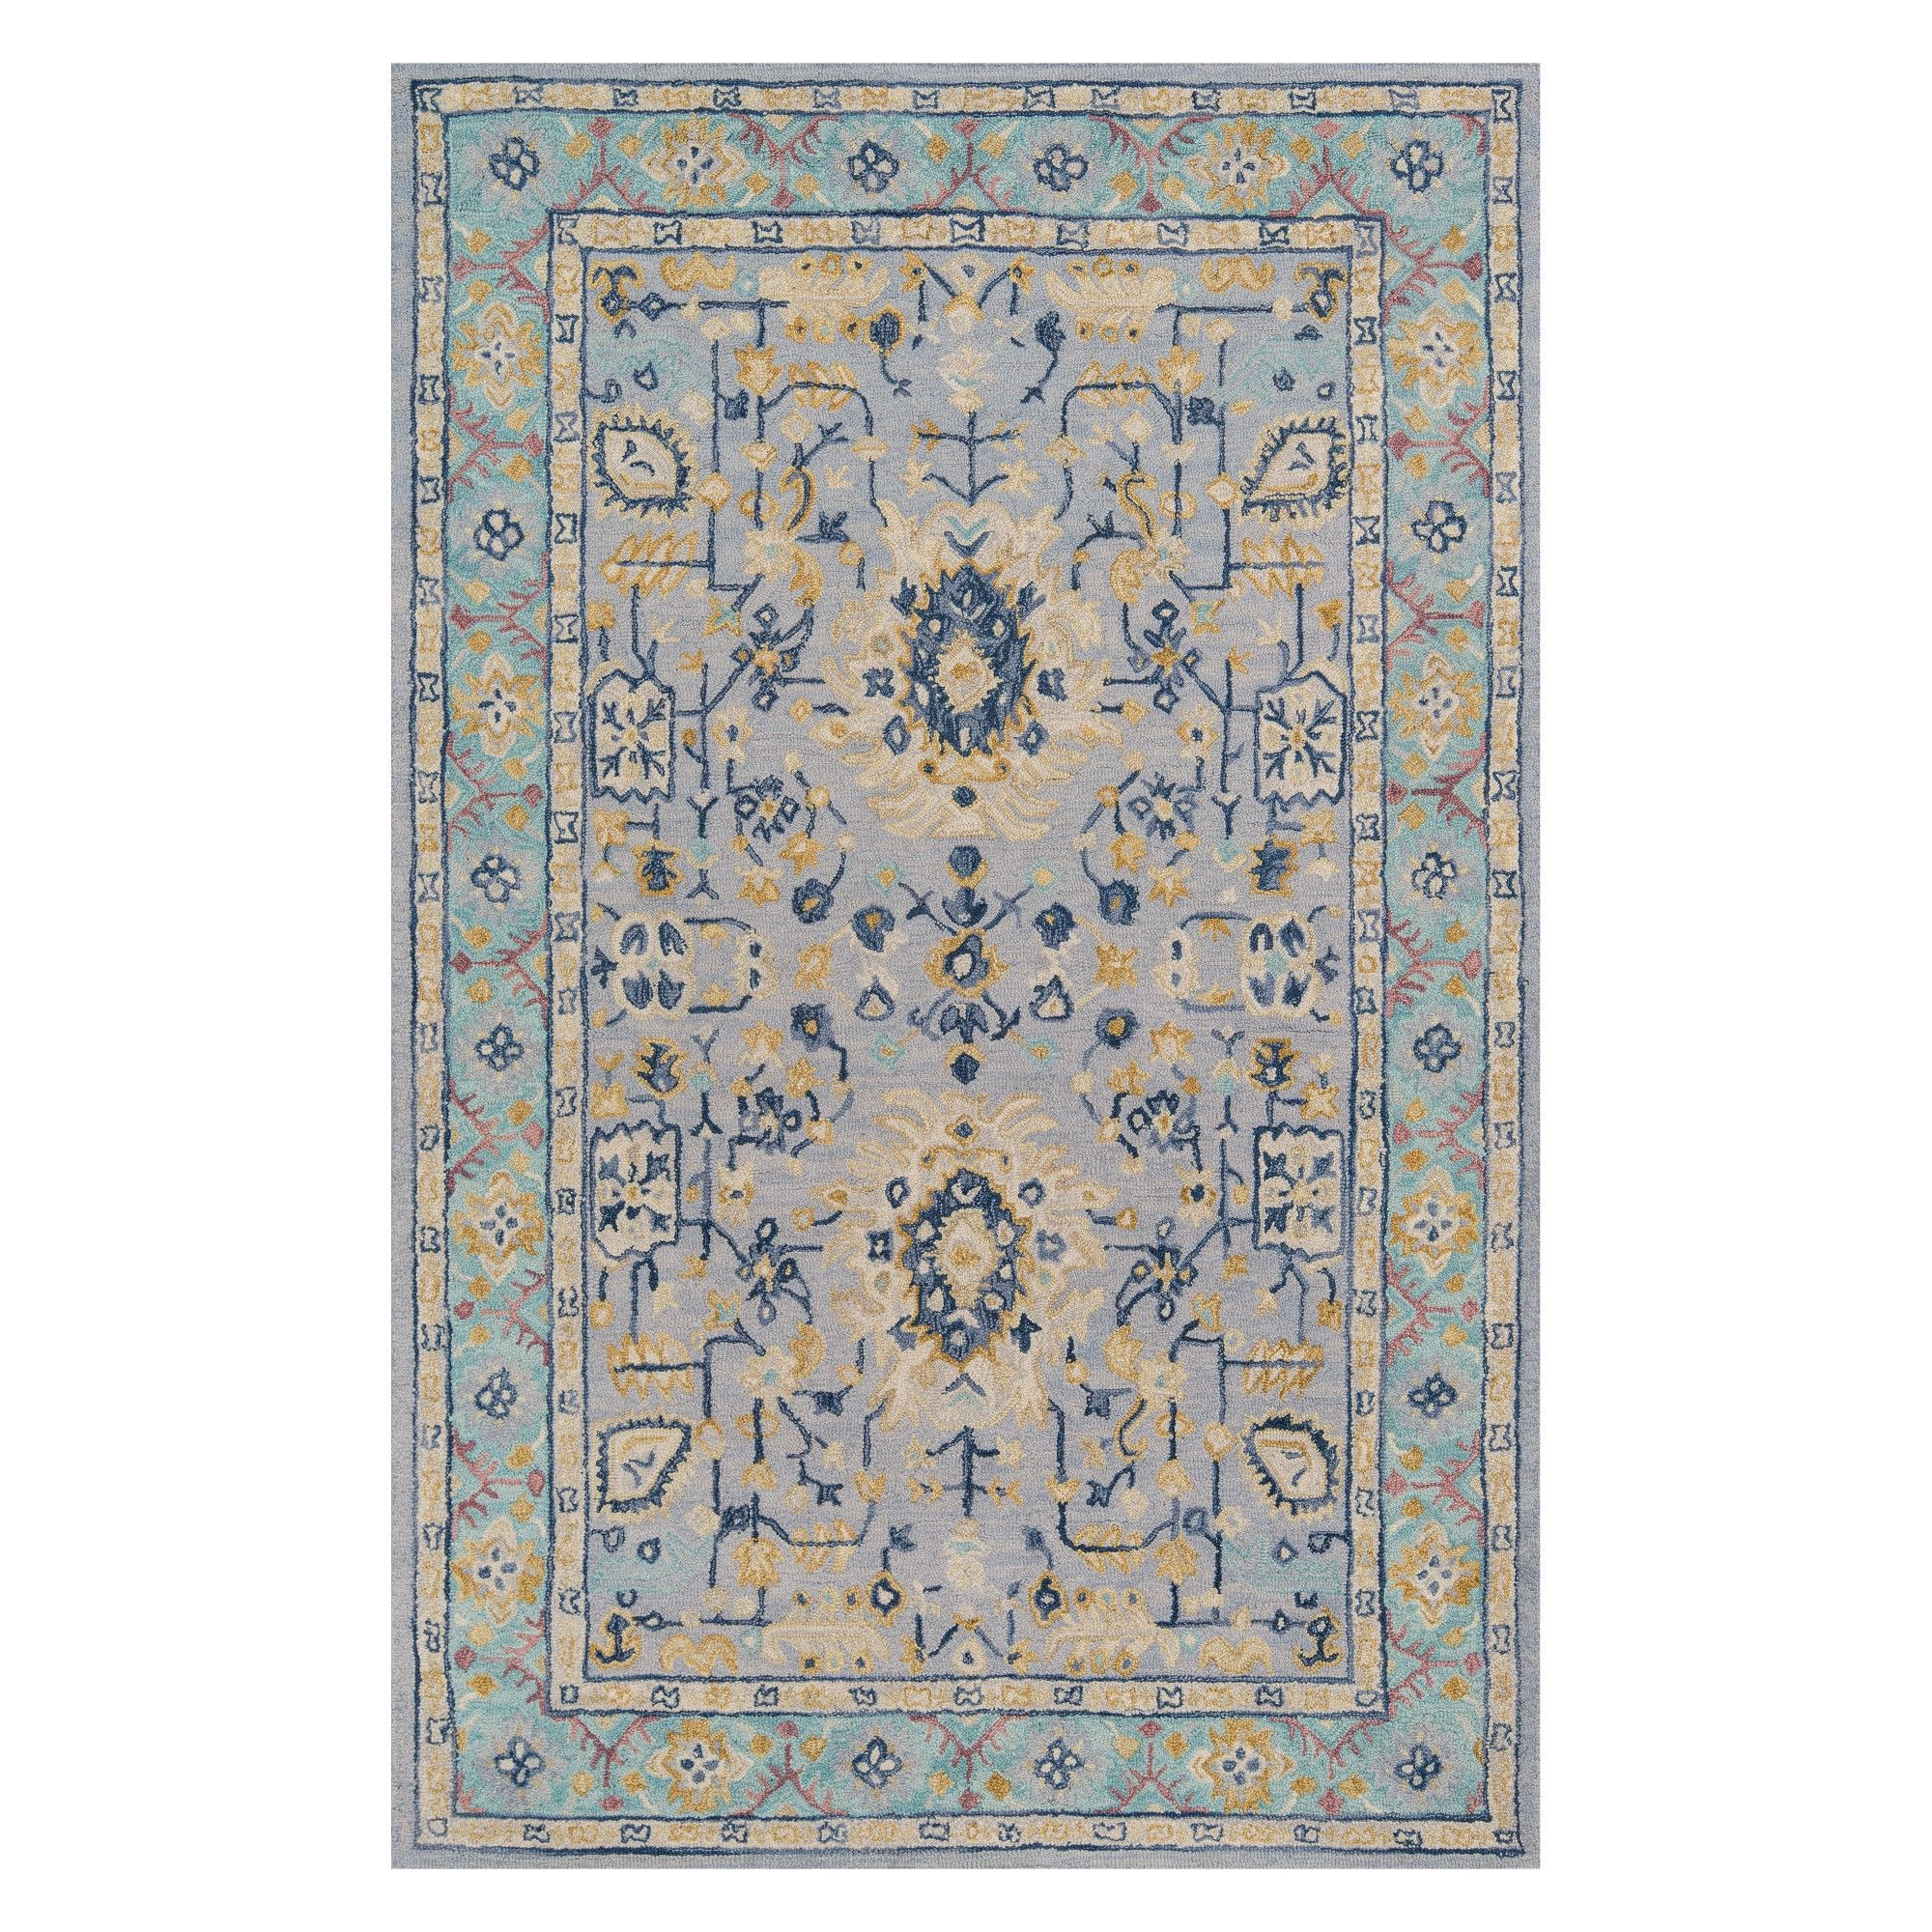 2 X3 Floral Tufted Accent Rug Blue Momeni With Images Area Rugs Blue Area Rugs Indoor Rugs